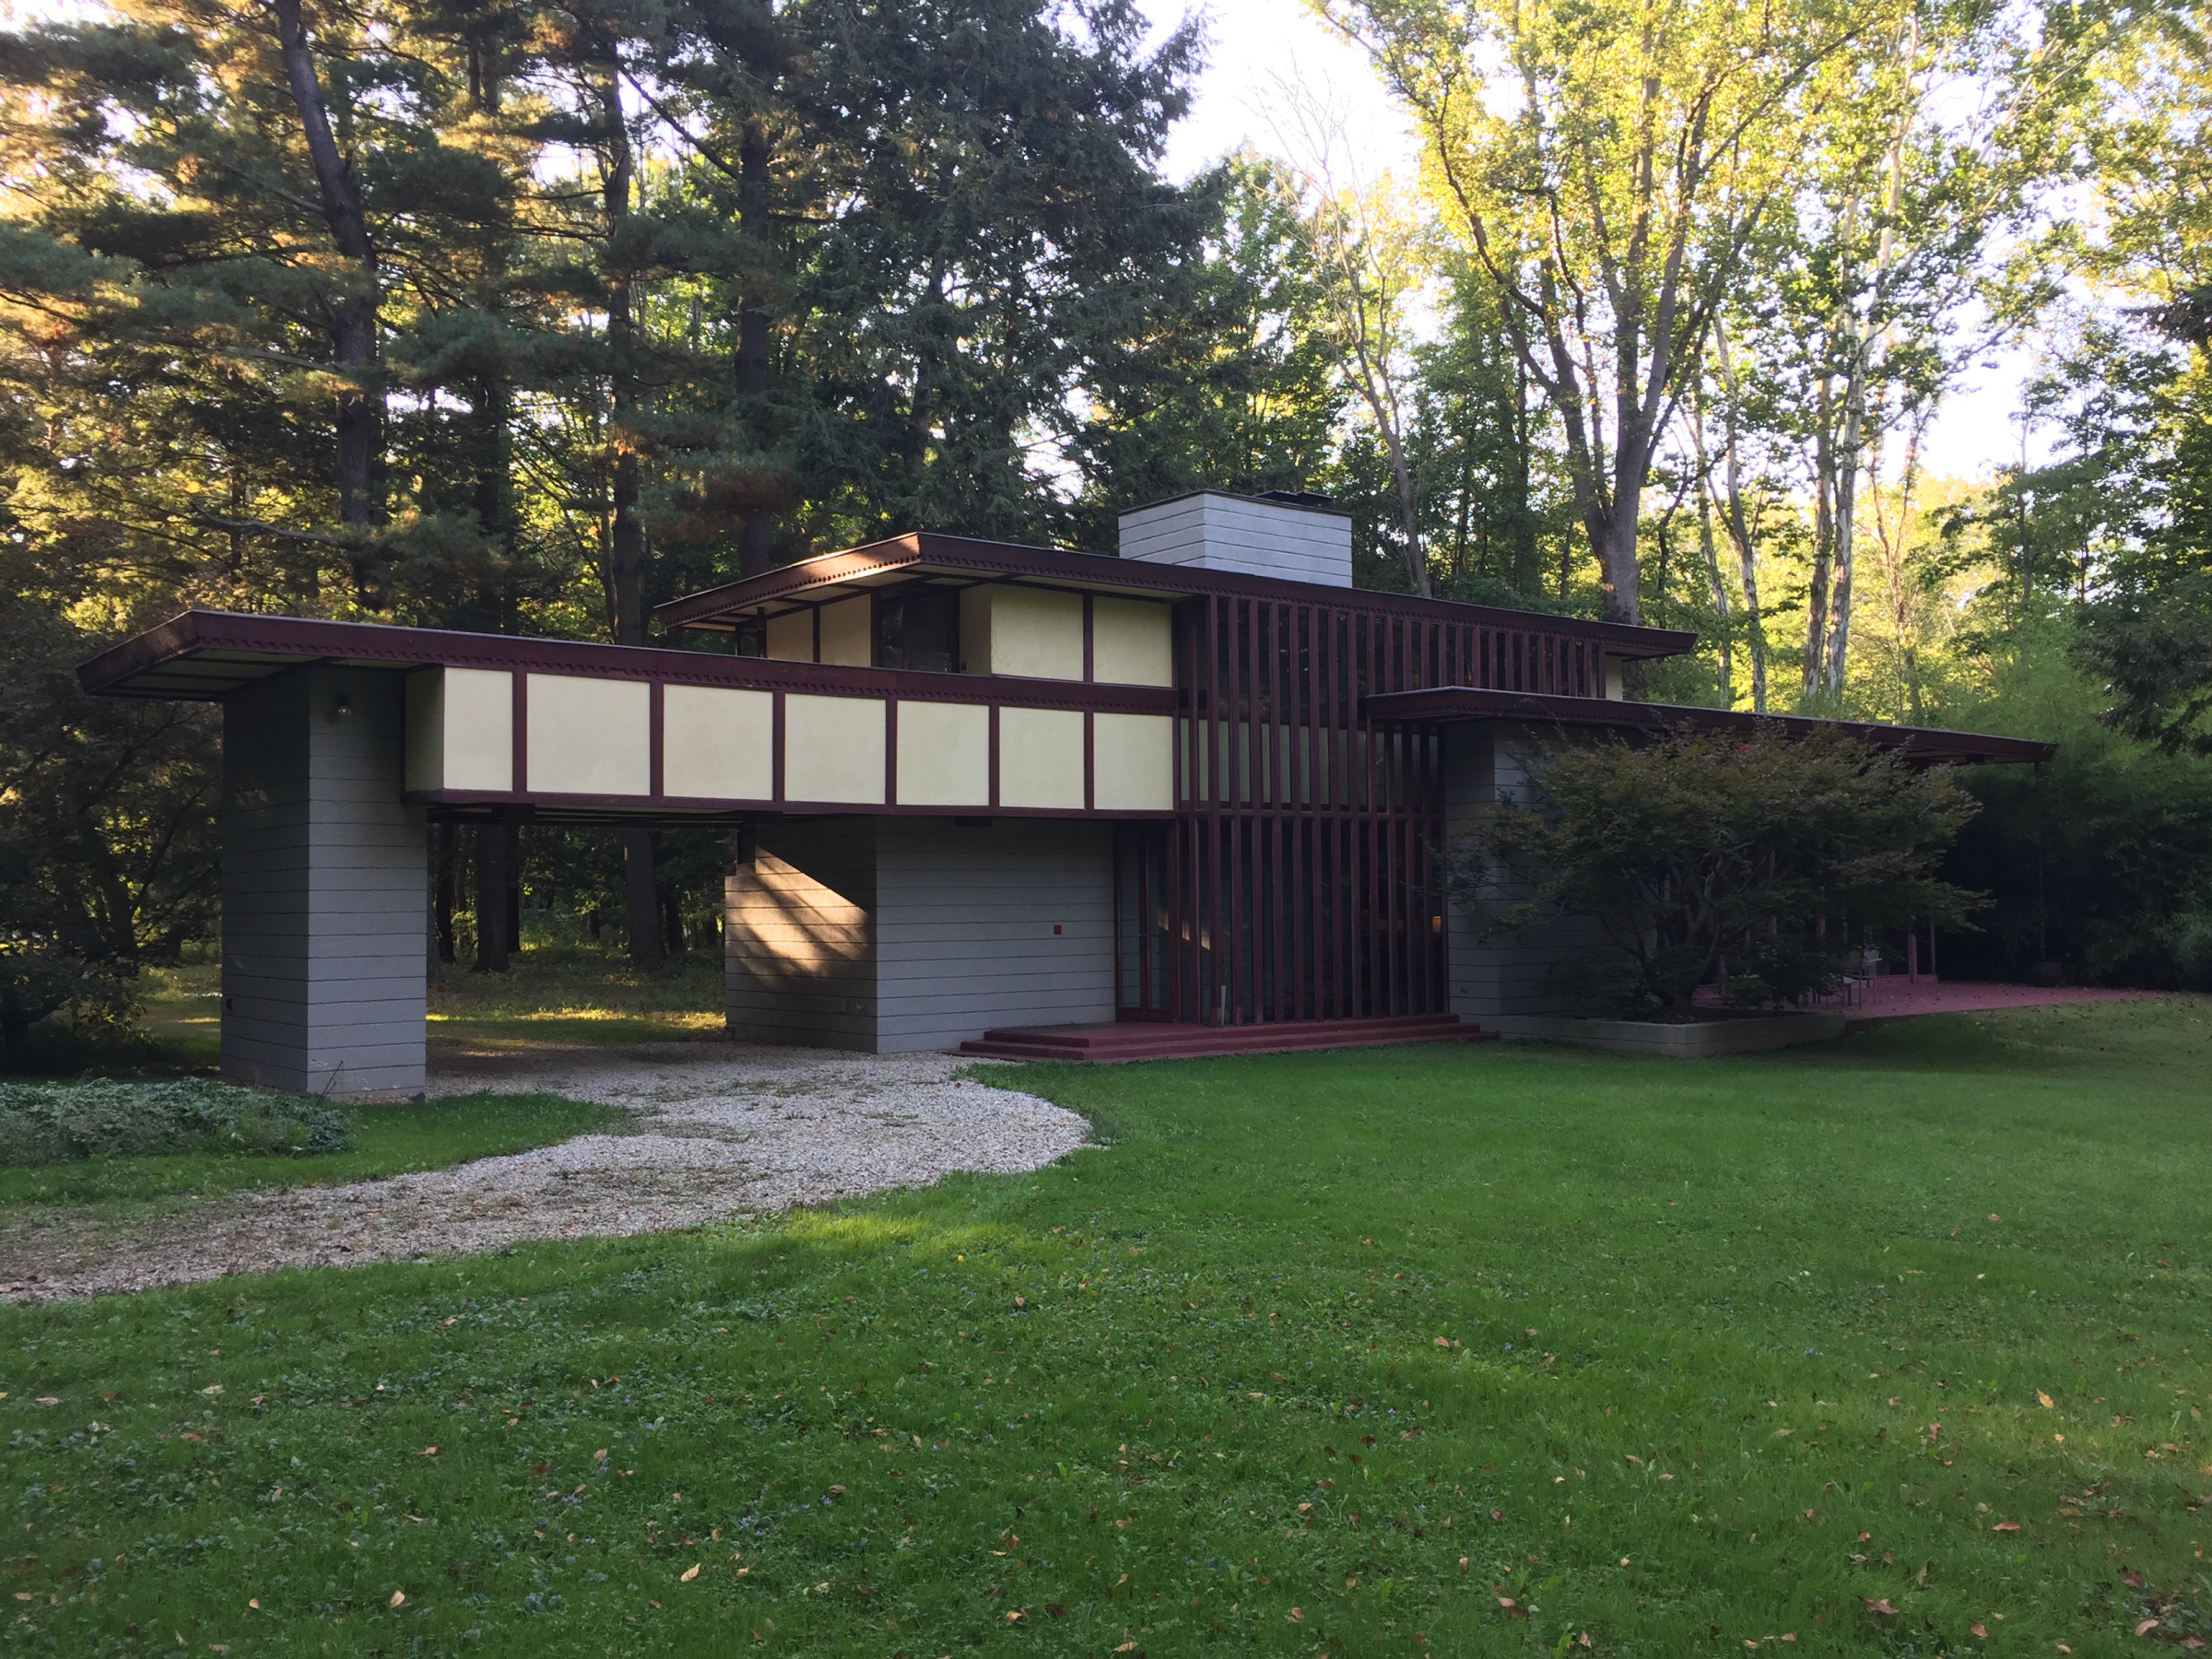 The Louis Penfield House Is A Rare Frank Lloyd Wright Designed Two Story Usonian Home Frank Lloyd Wright Design Frank Lloyd Wright Lloyd Wright